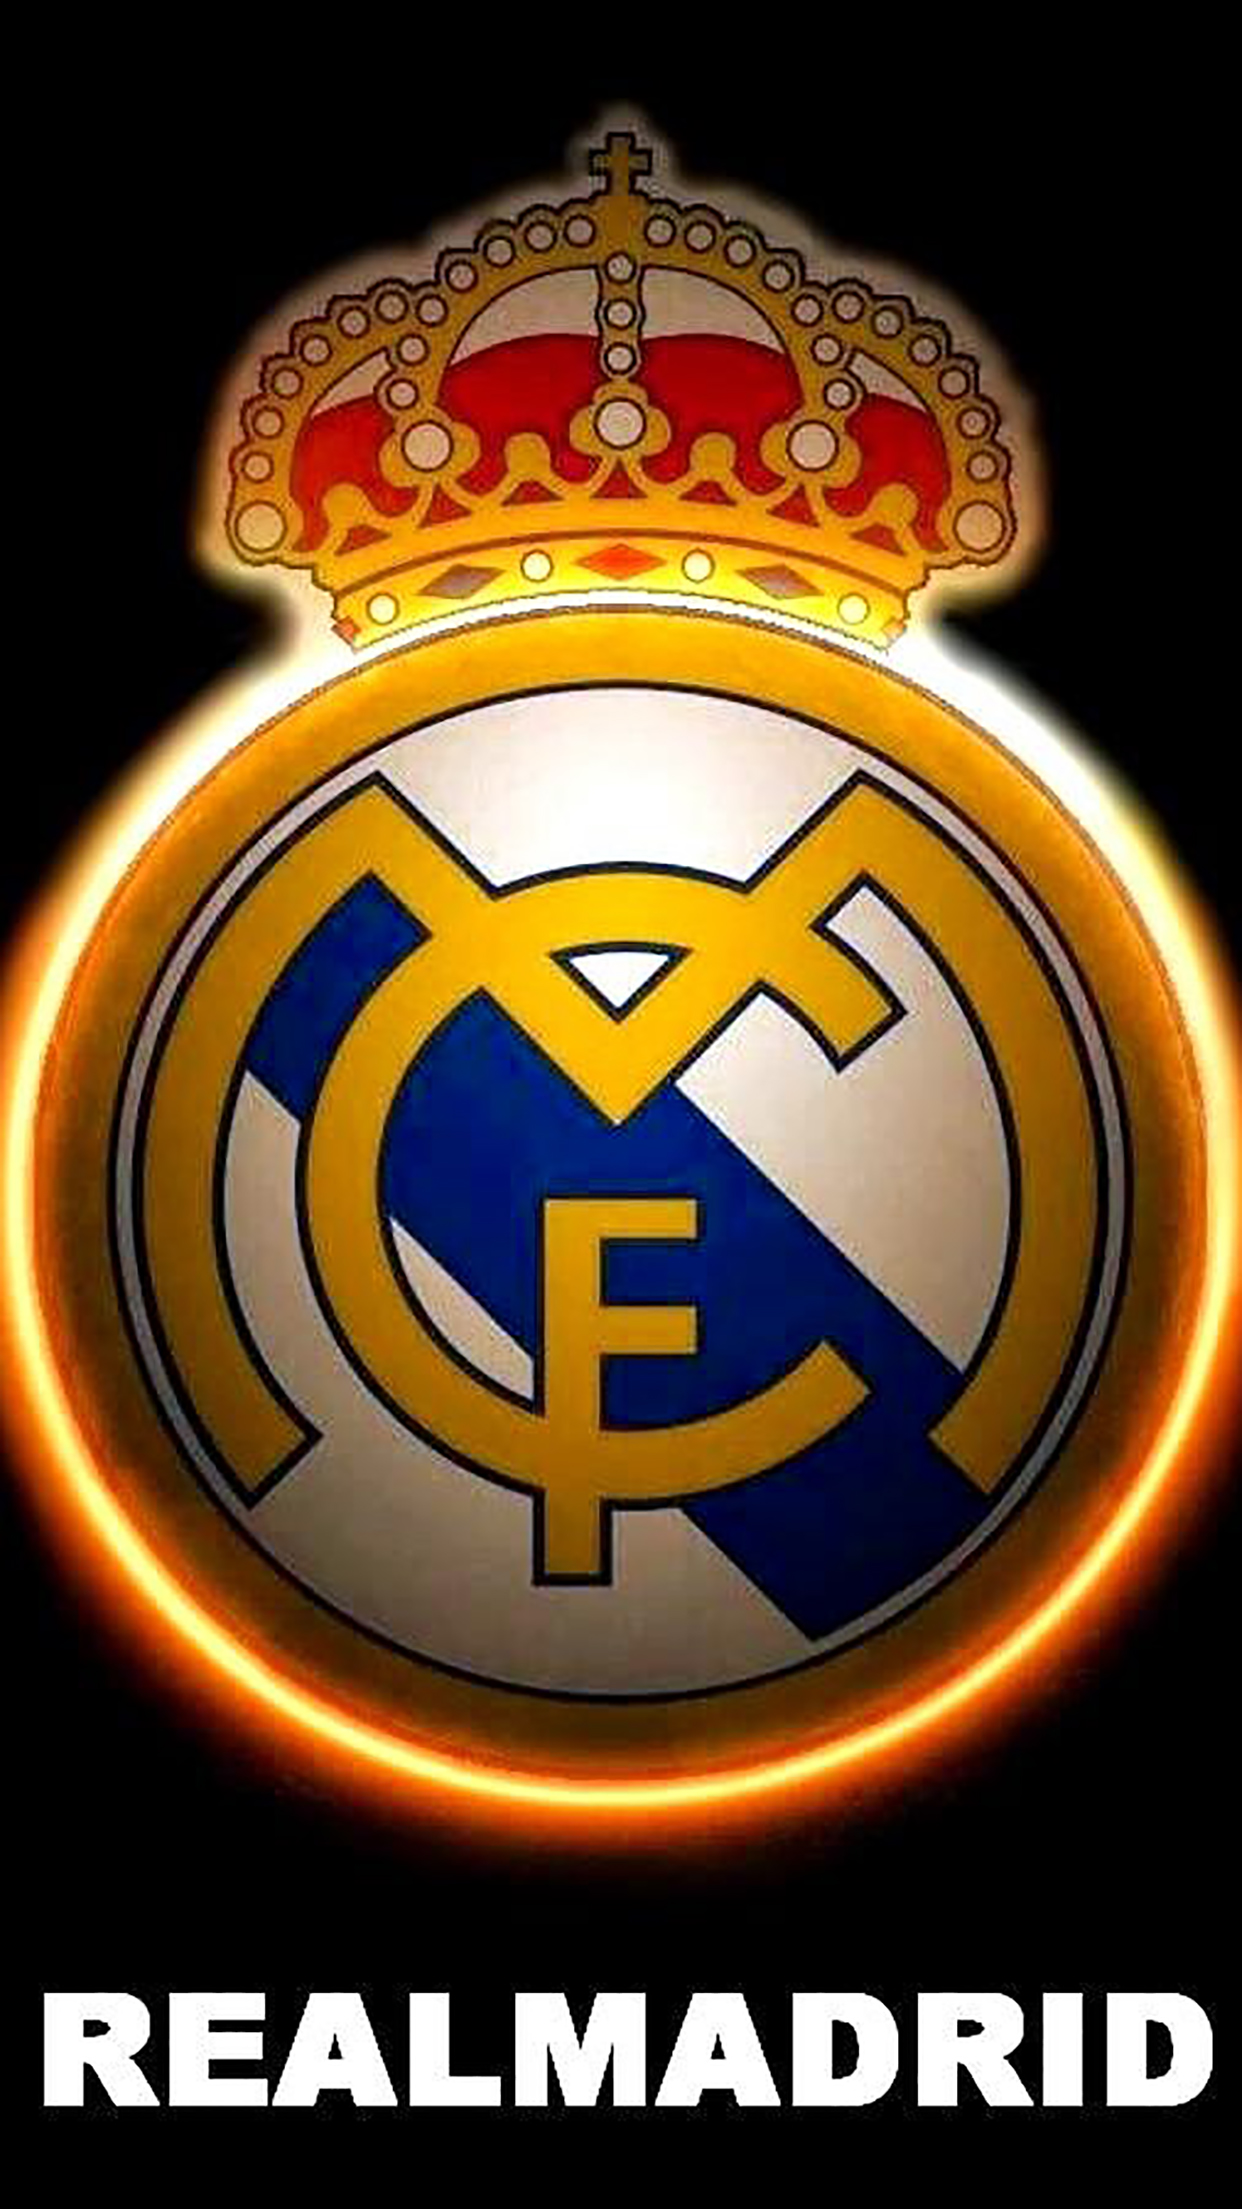 Real Madrid Logo 3 3Wallpapers iPhone Parallax Les 3Wallpapers iPhone du jour (18/05/2017)